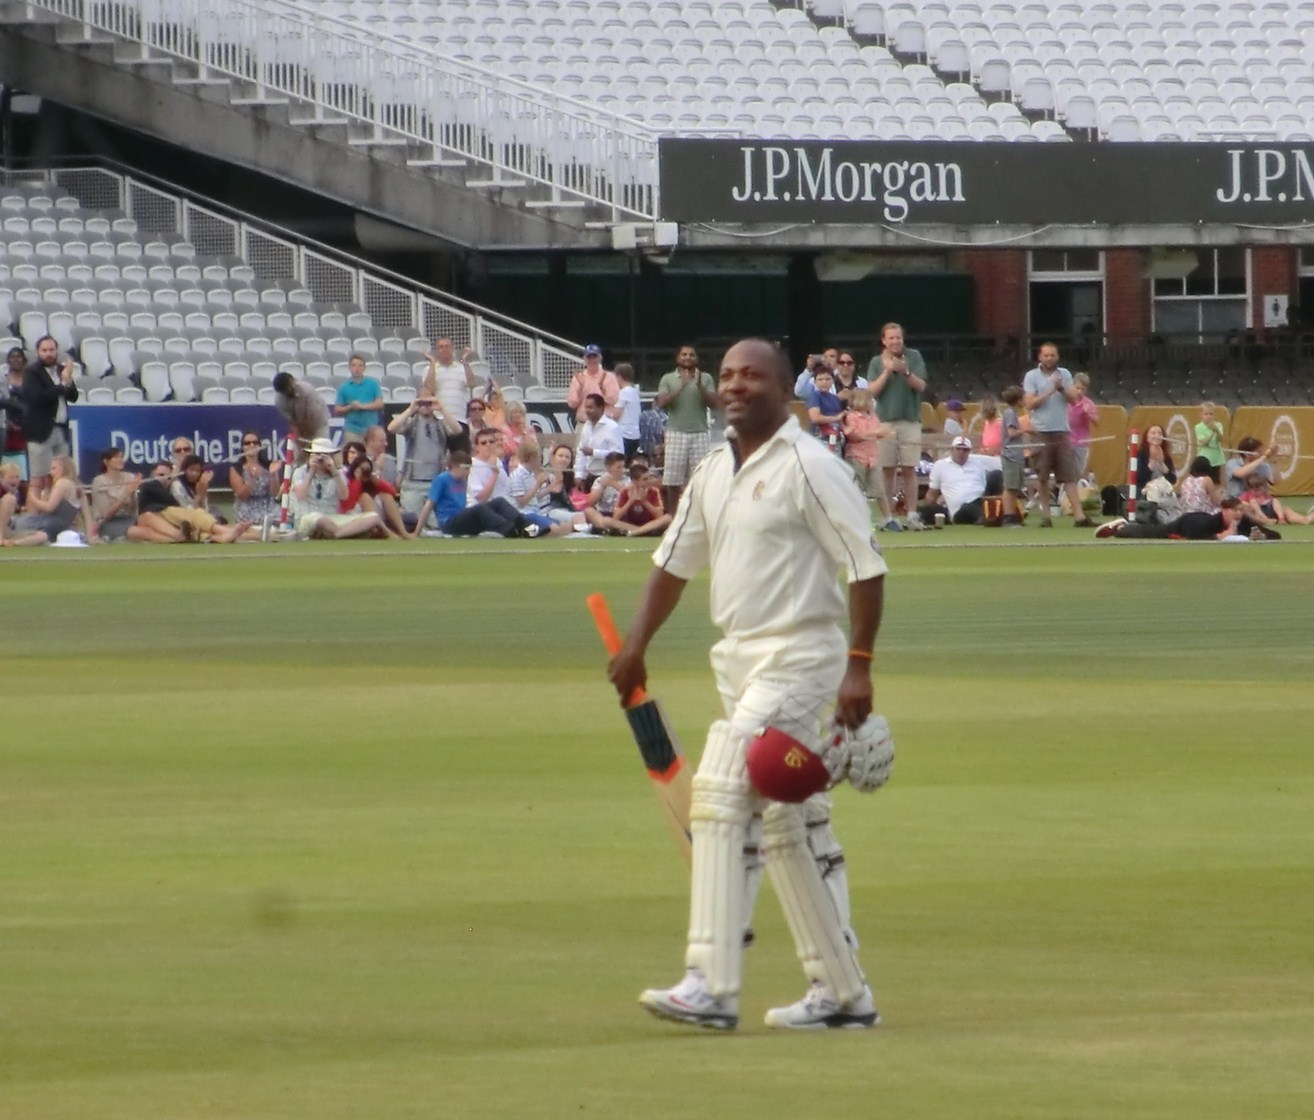 Brian Lara walks in after his blistering performance ©ITG